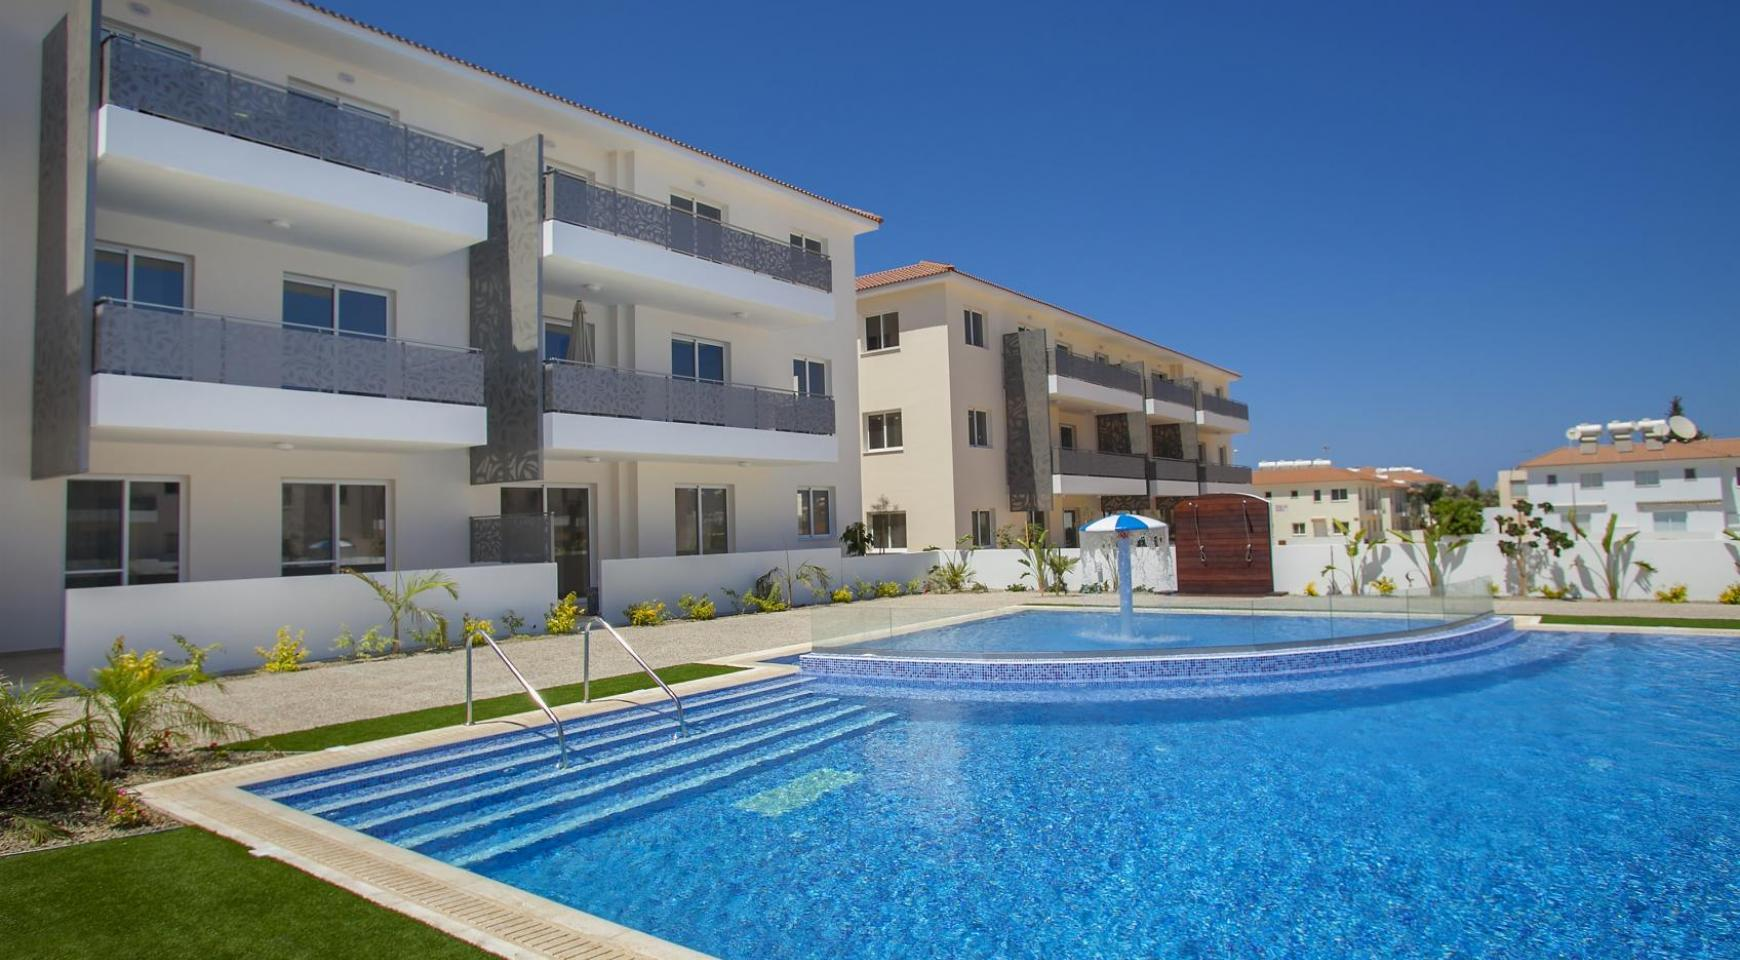 New 2 Bedroom Apartment in Kapparis Area - 28